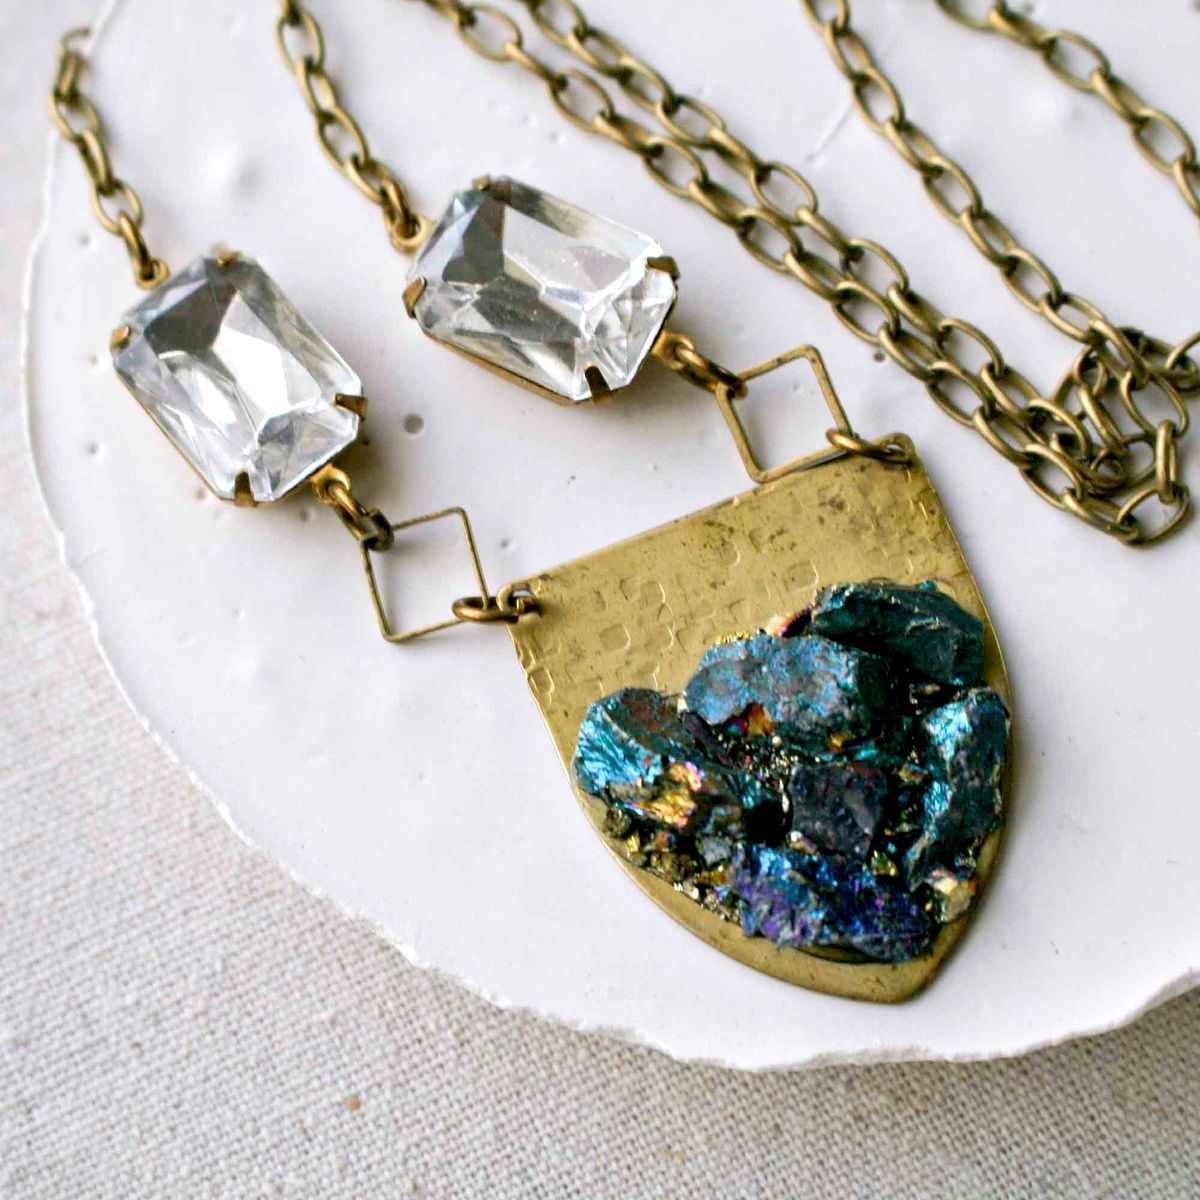 Crushed Peacock Ore and Brass Shield Pendant Necklace - product image